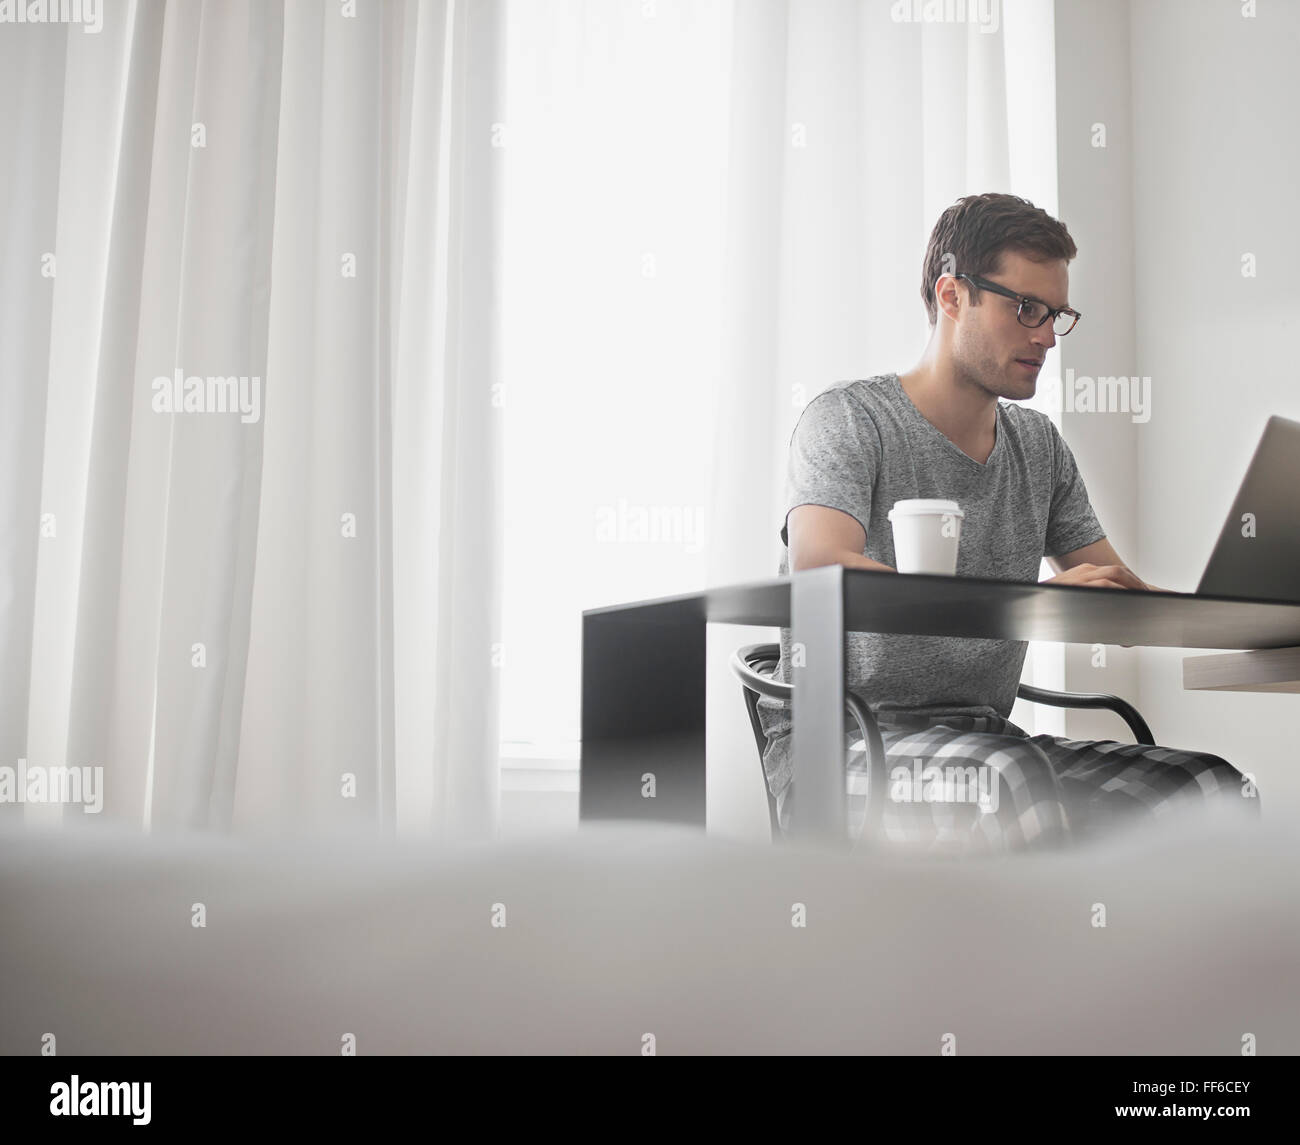 A working day. A man seated at a laptop computer, working in a hotel bedroom with a cup of coffee. Stock Photo